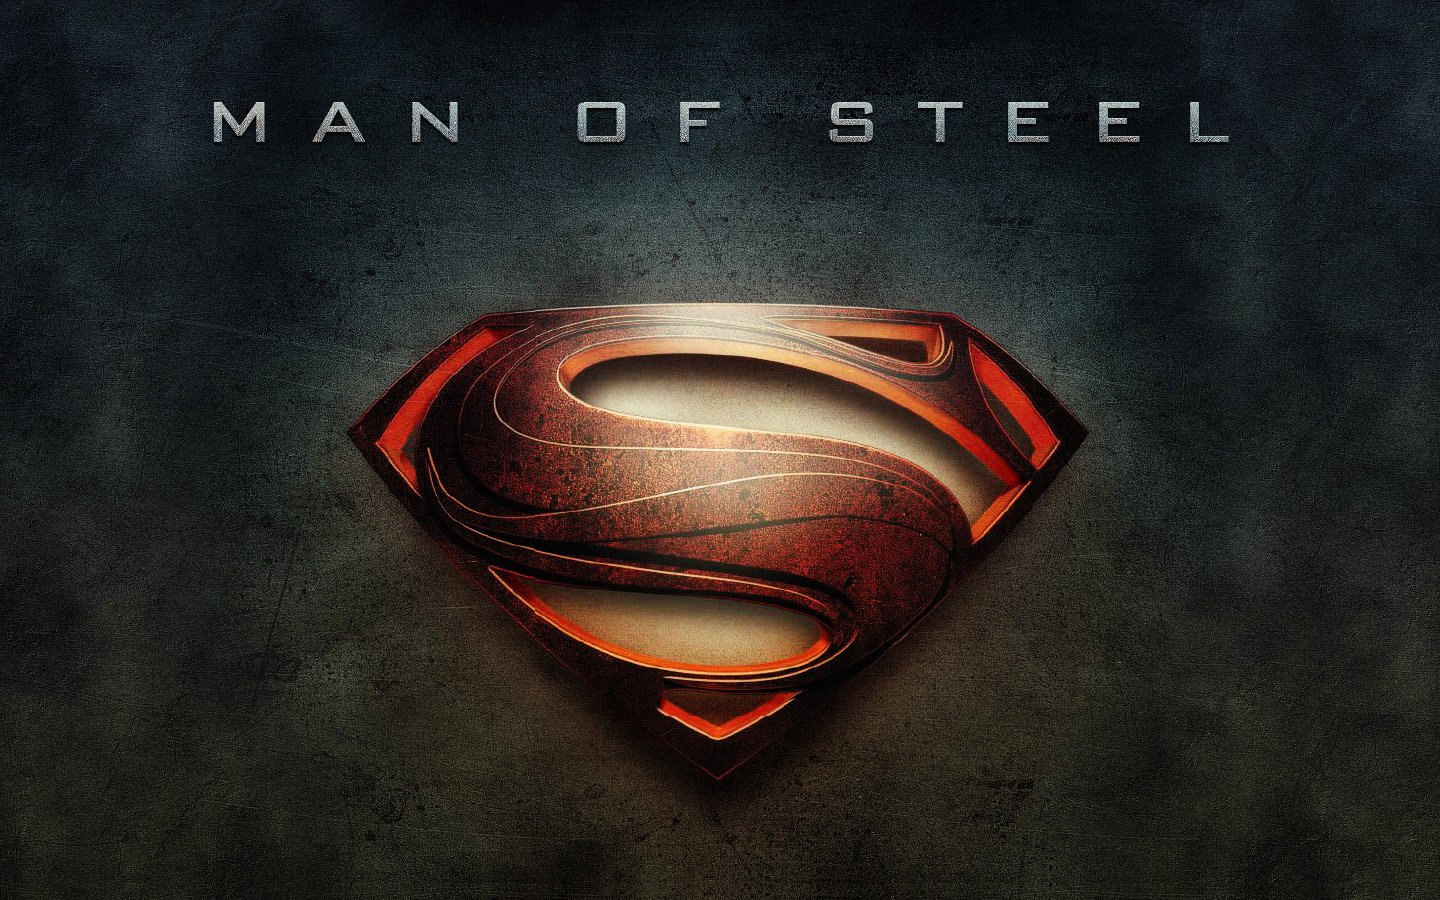 Man of steel HD Wallpaper 1440x900